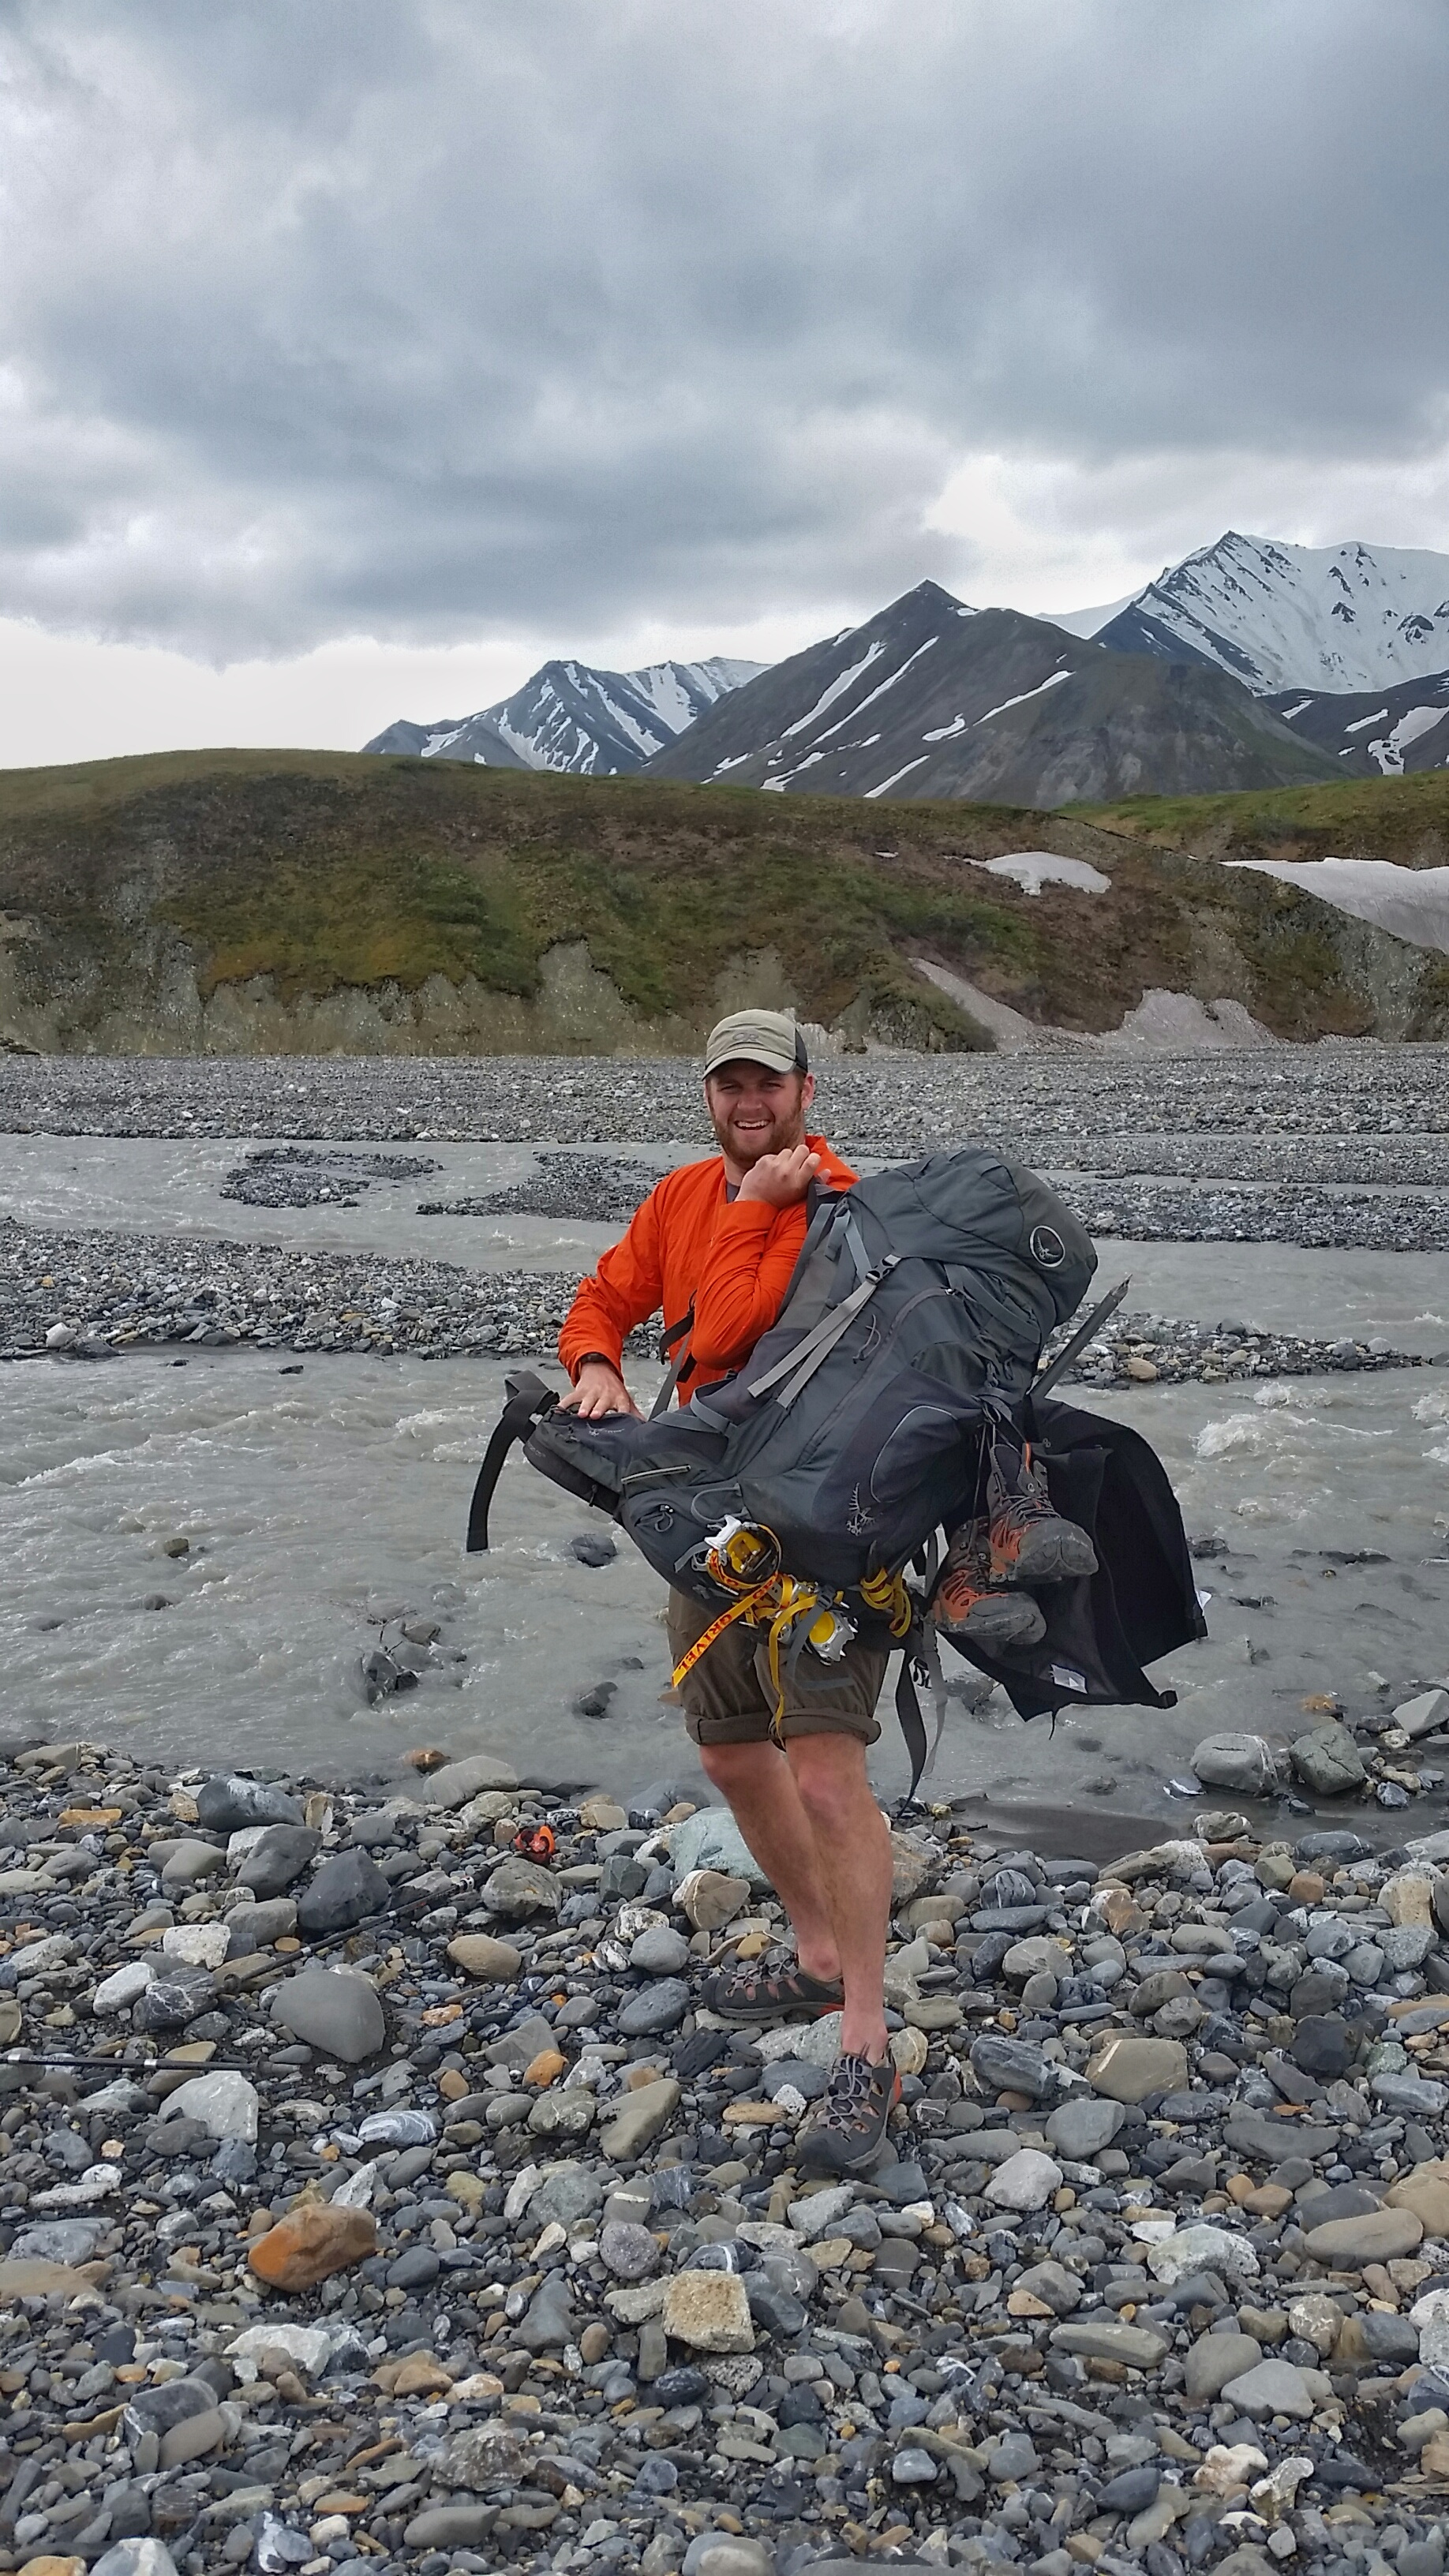 Chris preparing to cross the braided rivers.